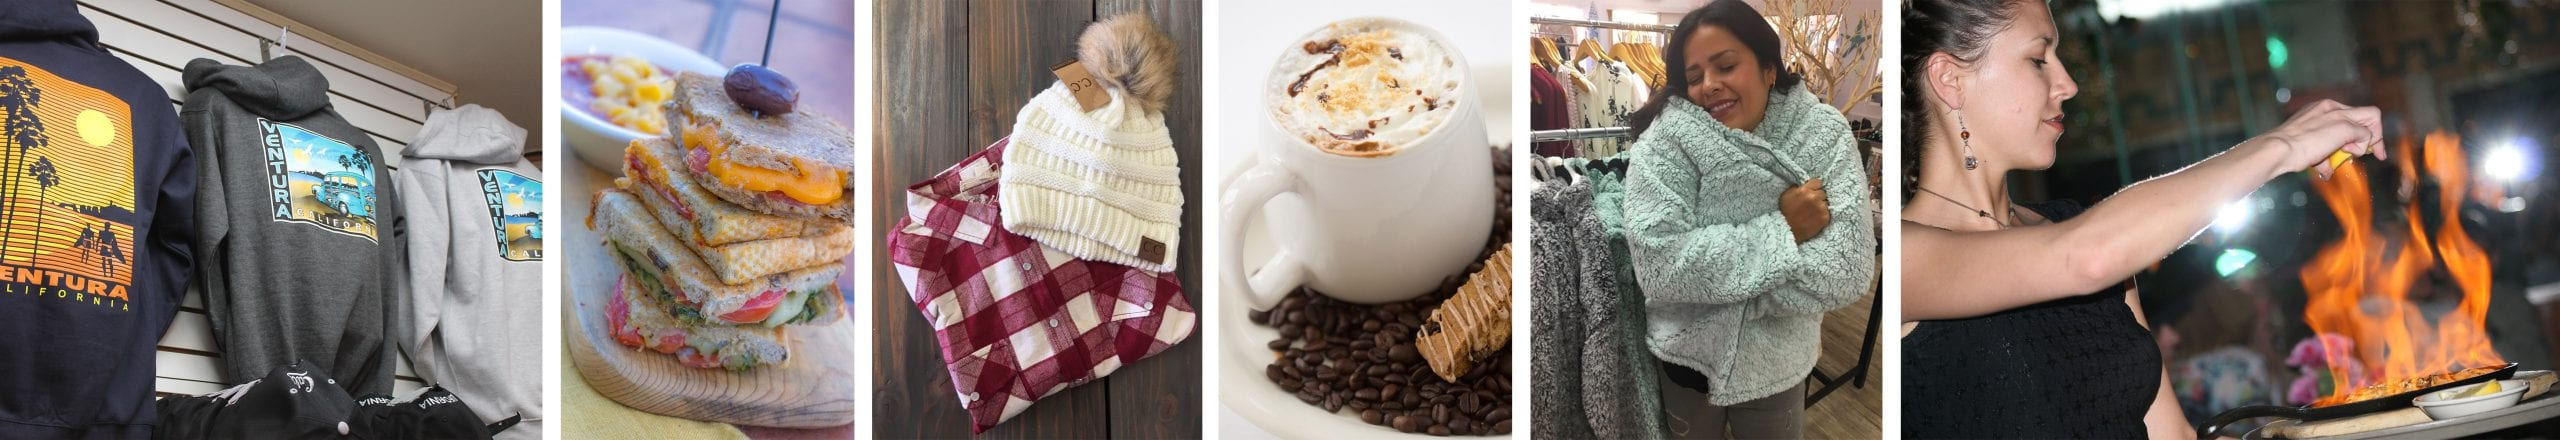 so many ways to warm yourself seaside! grab a comfy sweatshirt, enjoy some warm food, sip on a hot drink, wrap yourself in a cozy sweater, toast yourself by the fire